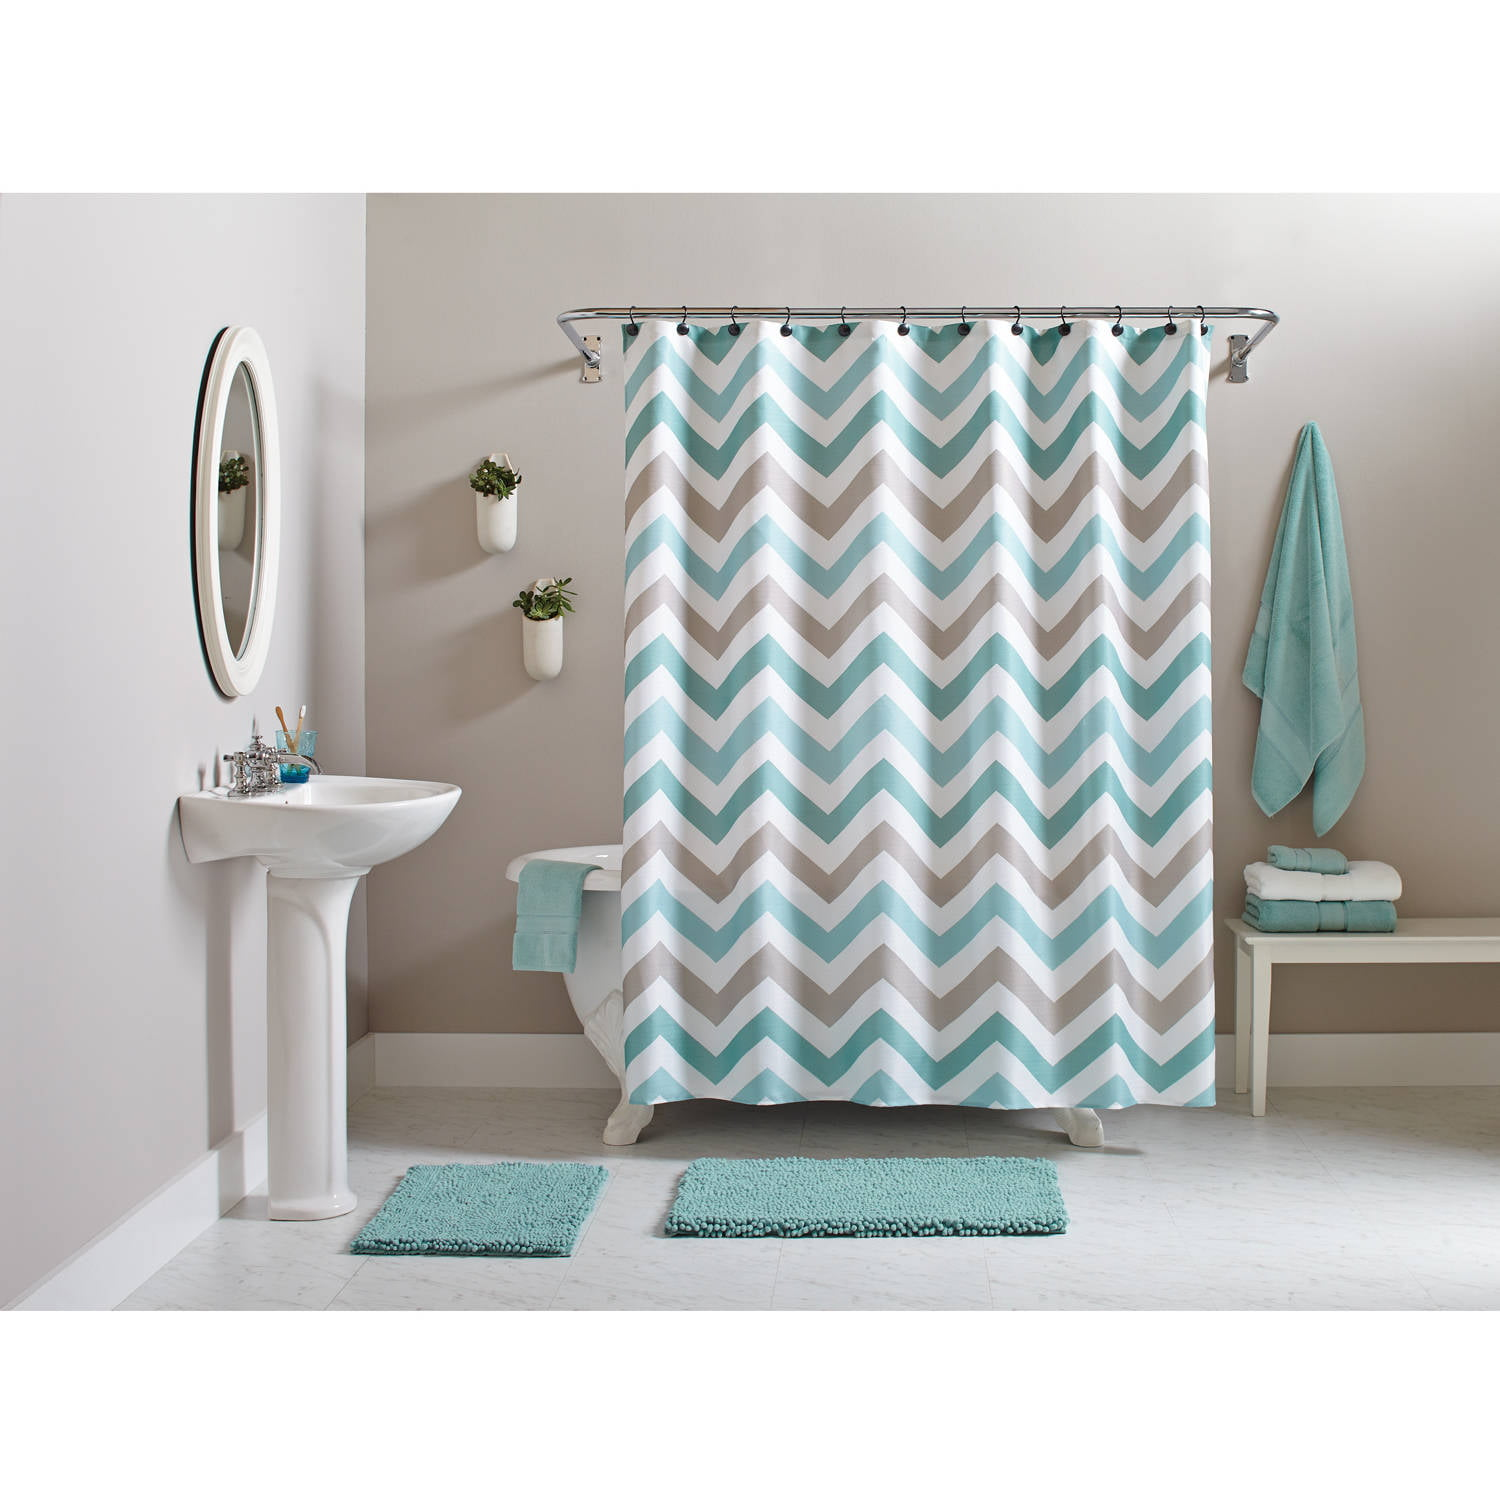 Better Homes and Gardens Chevron 15 Piece Bath Set  Teal Brown Walmart com